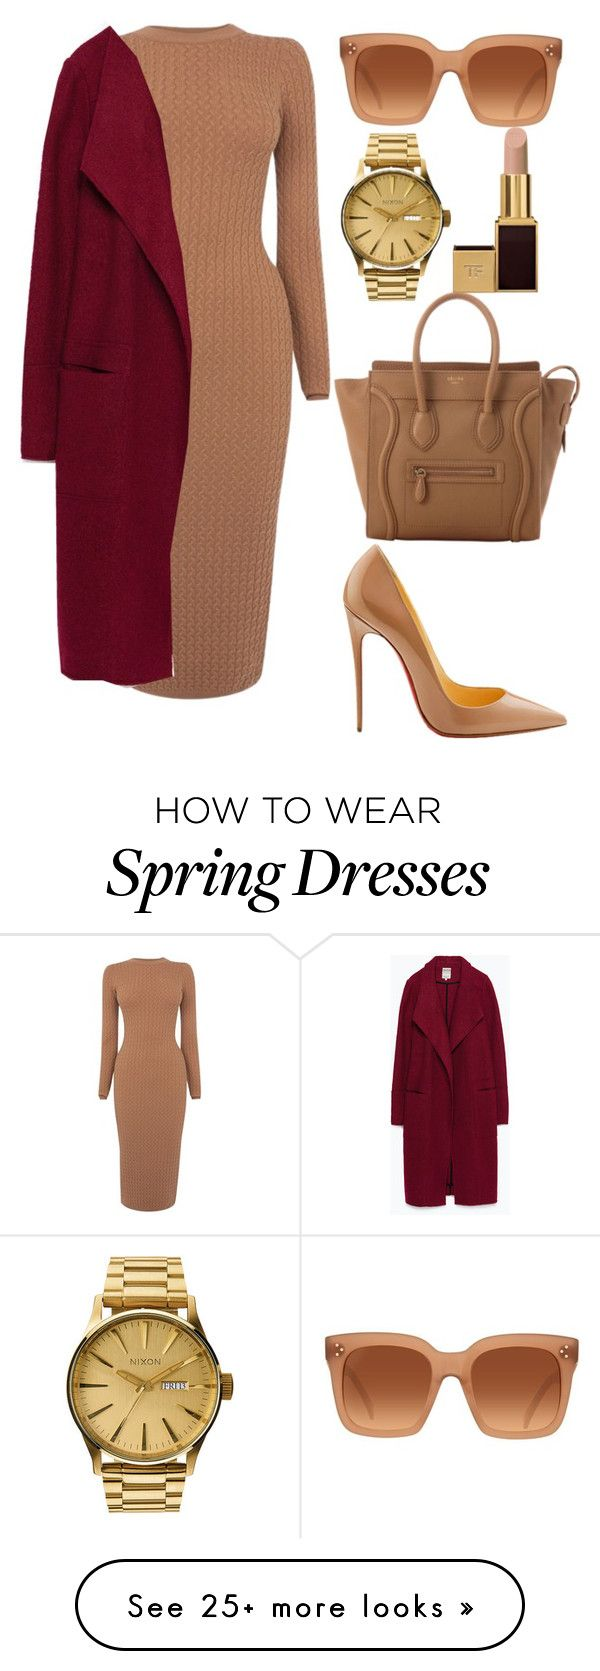 """Untitled #322"" by amoney-1 on Polyvore featuring moda, Karen Millen, Christian Louboutin, CÉLINE, Nixon, Tom Ford y Zara"